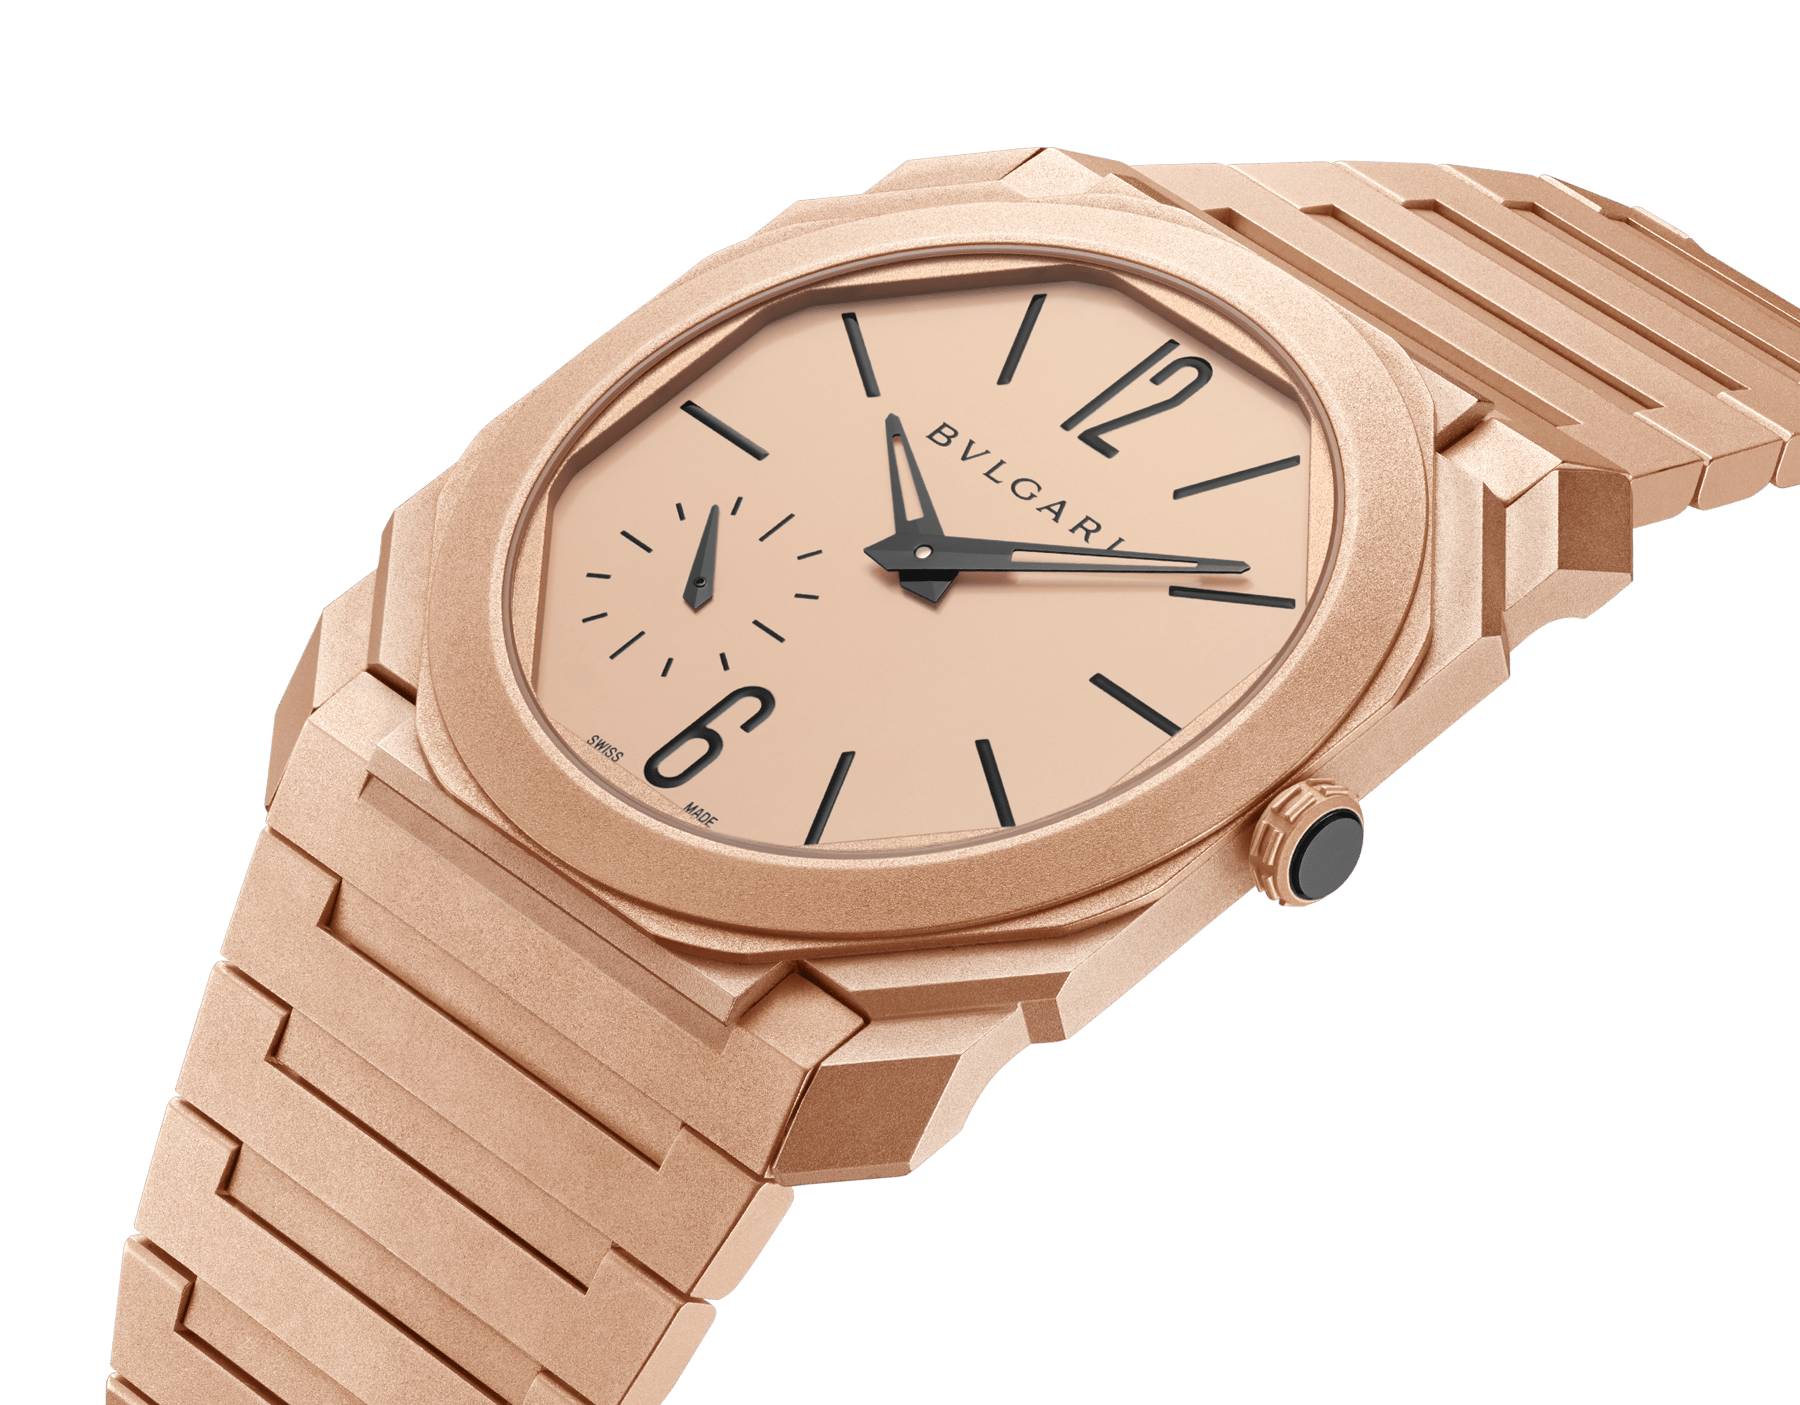 Octo Finissimo Automatic watch with mechanical manufacture movement, automatic winding, platinum microrotor, small seconds, extra-thin sandblasted 18 kt rose gold case and bracelet, and 18 kt rose gold dial 102912 image 2